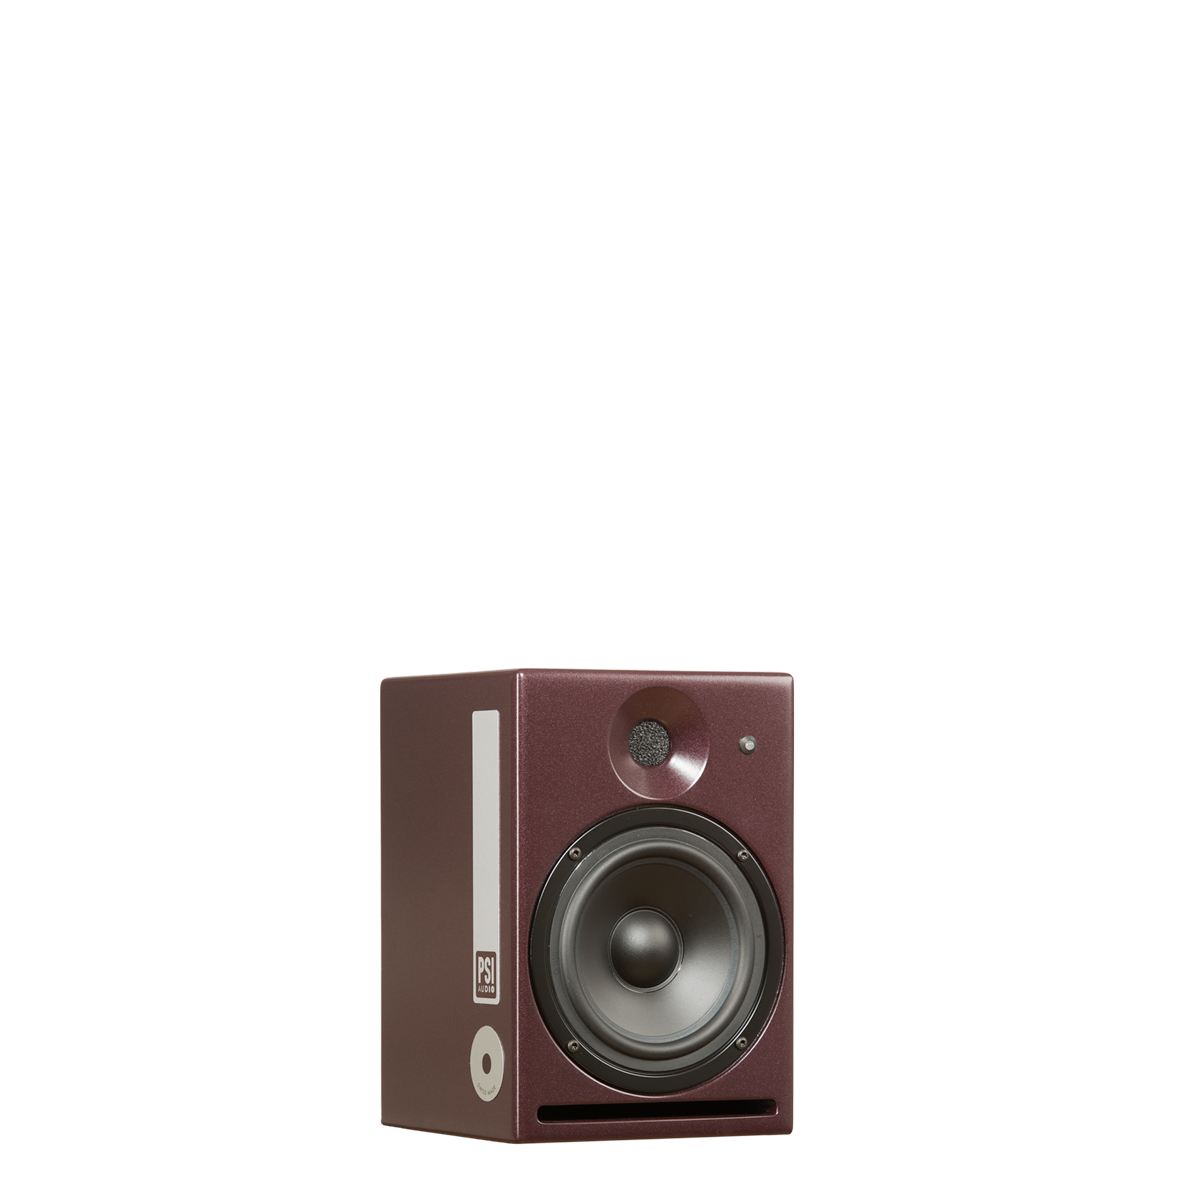 psi audio a14 m studio professional studio monitor showtechnix. Black Bedroom Furniture Sets. Home Design Ideas